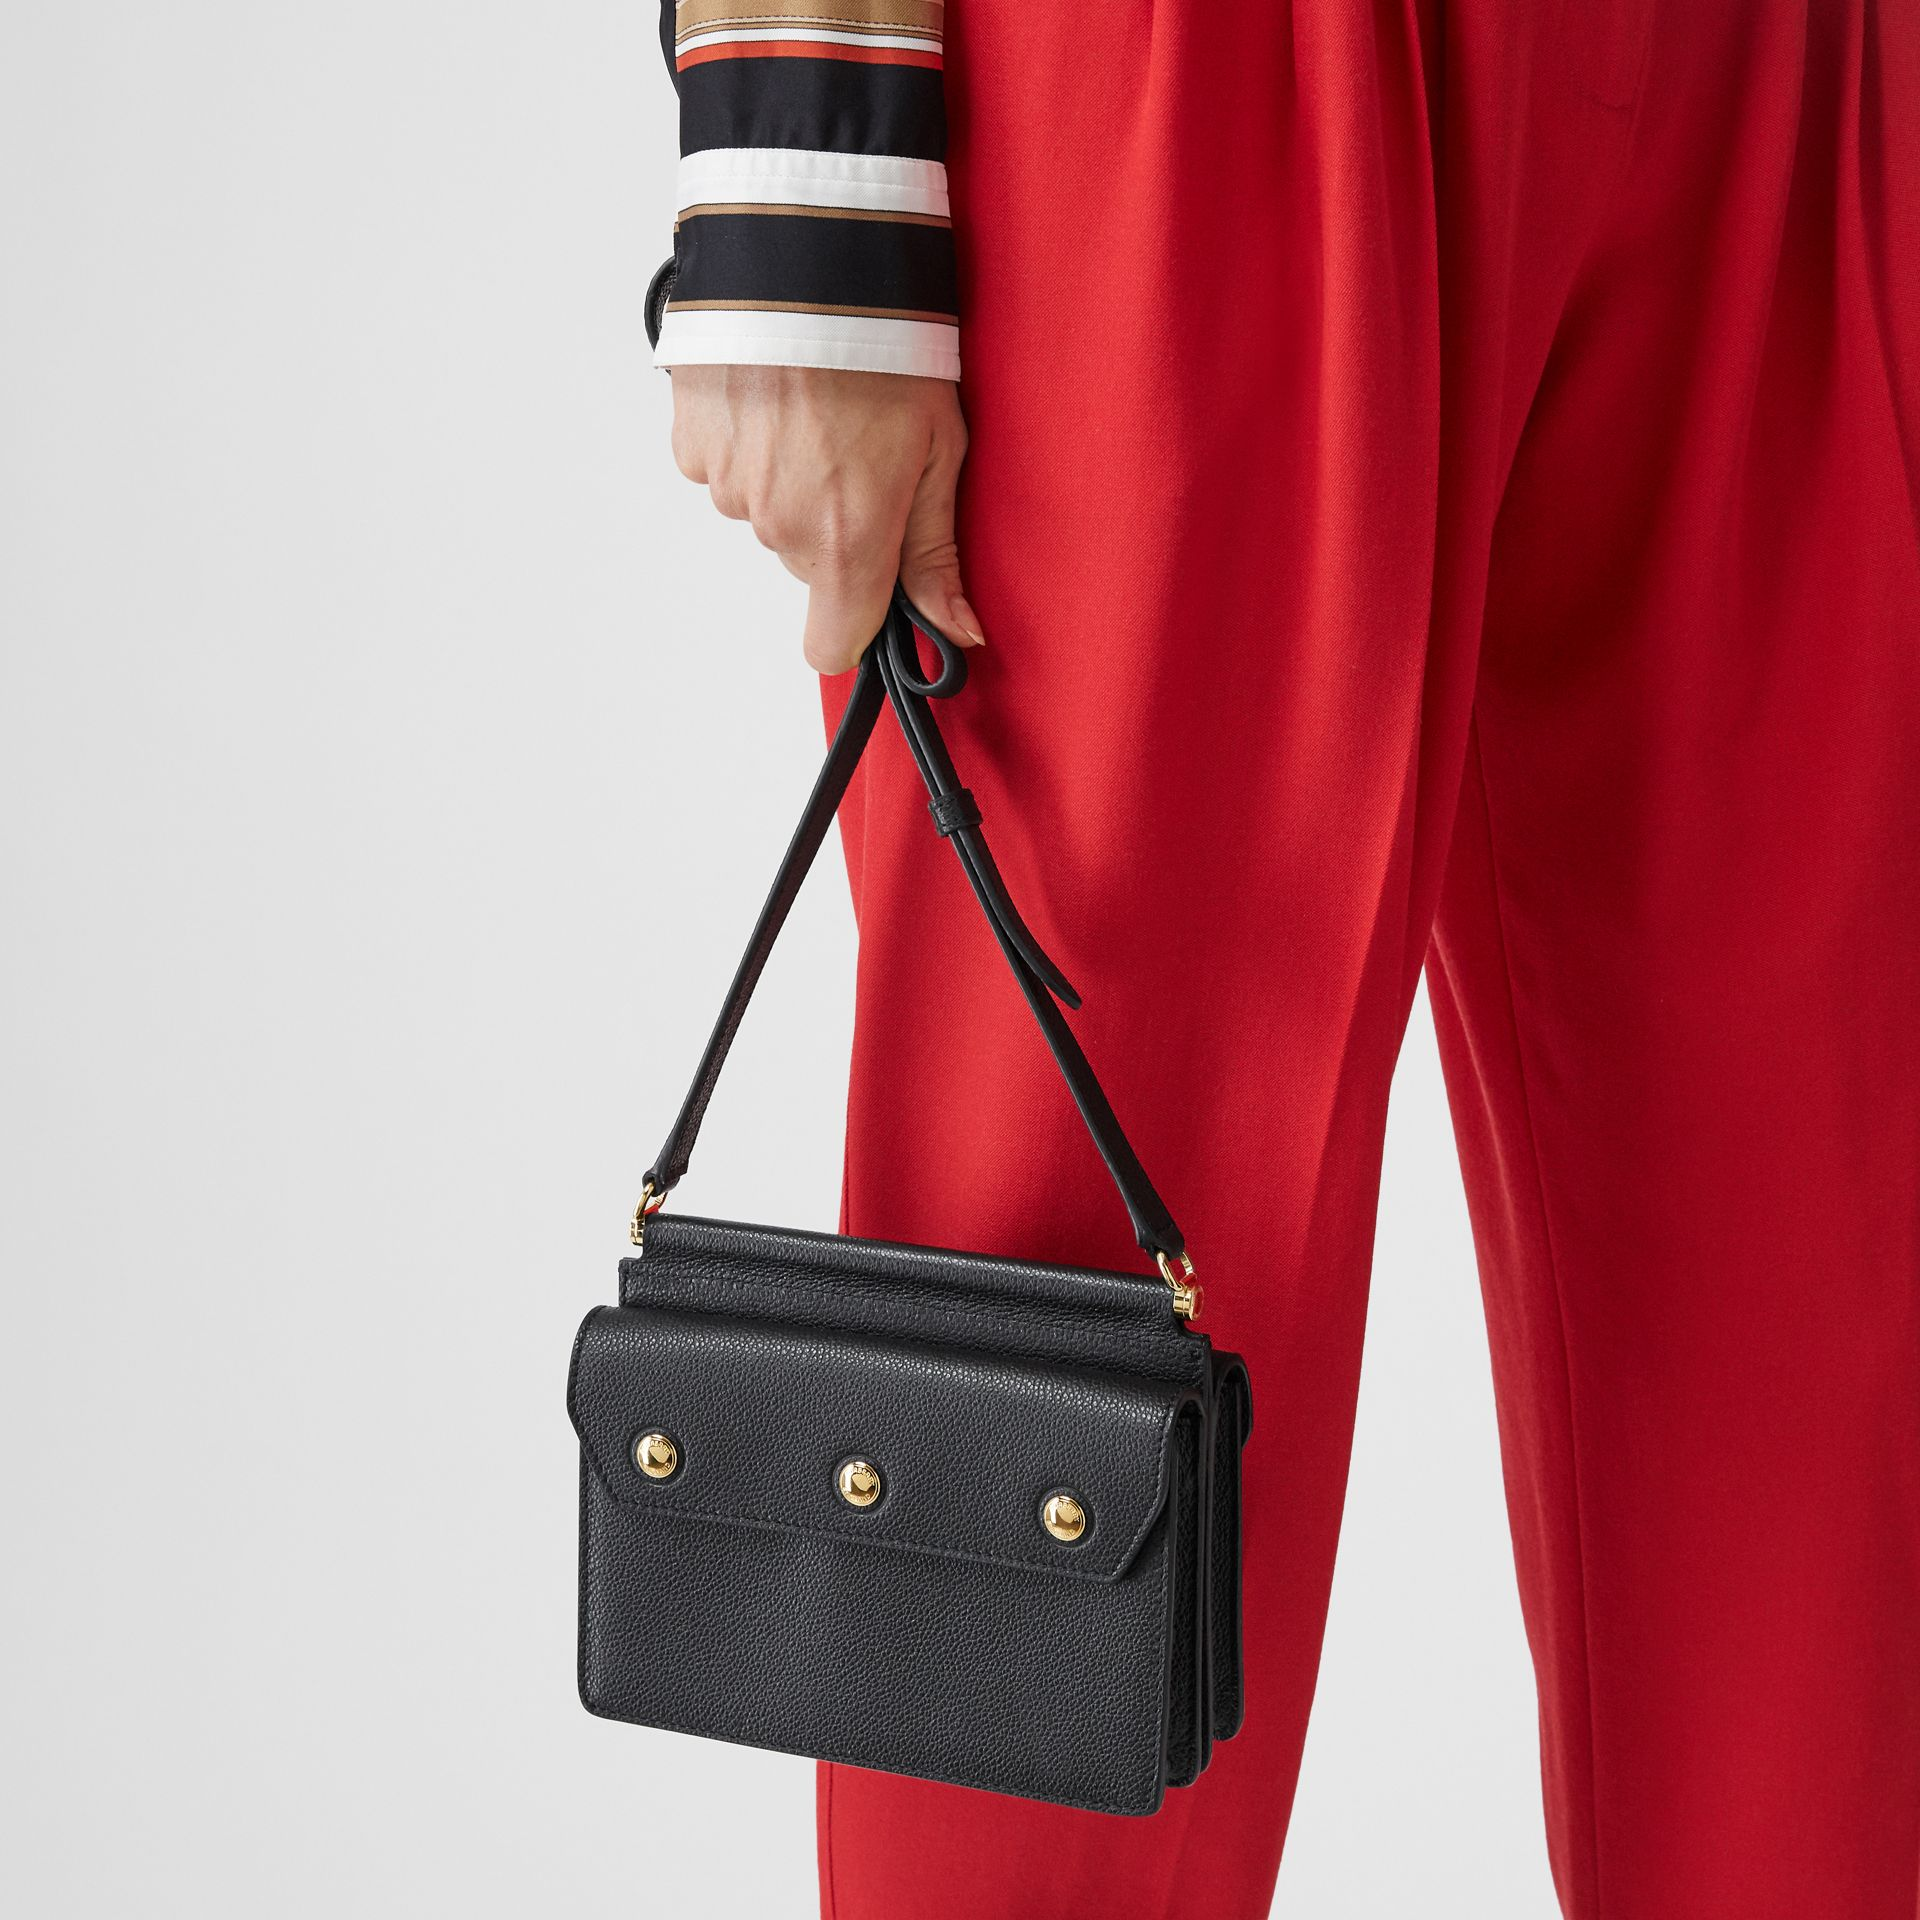 Mini Leather Title Bag in Black - Women | Burberry - gallery image 2